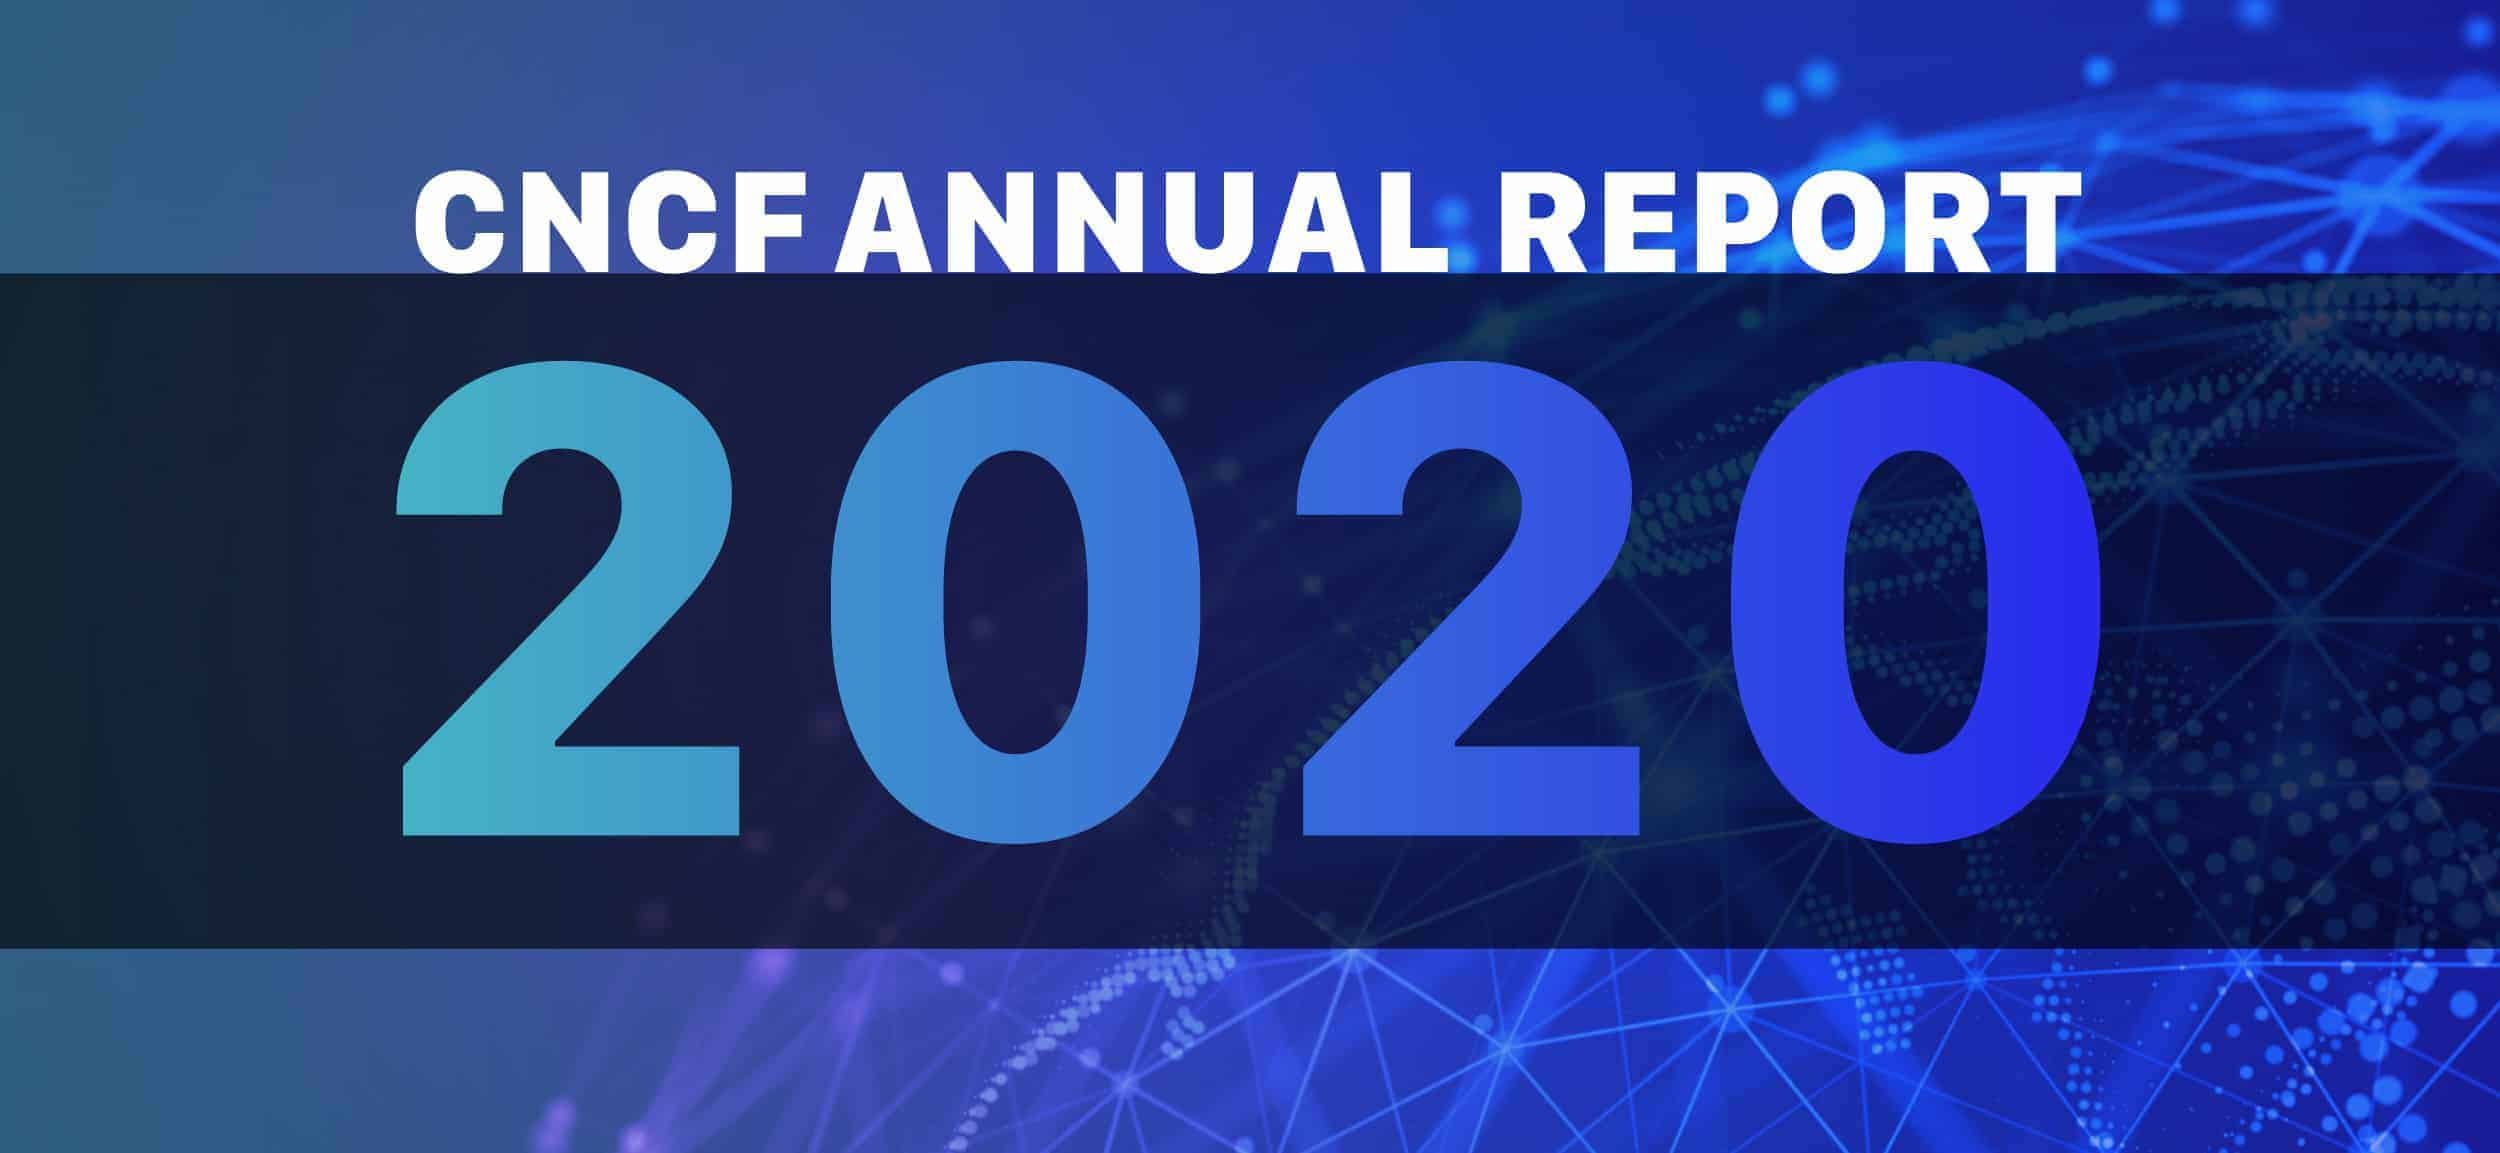 CNCF Annual Report 2020